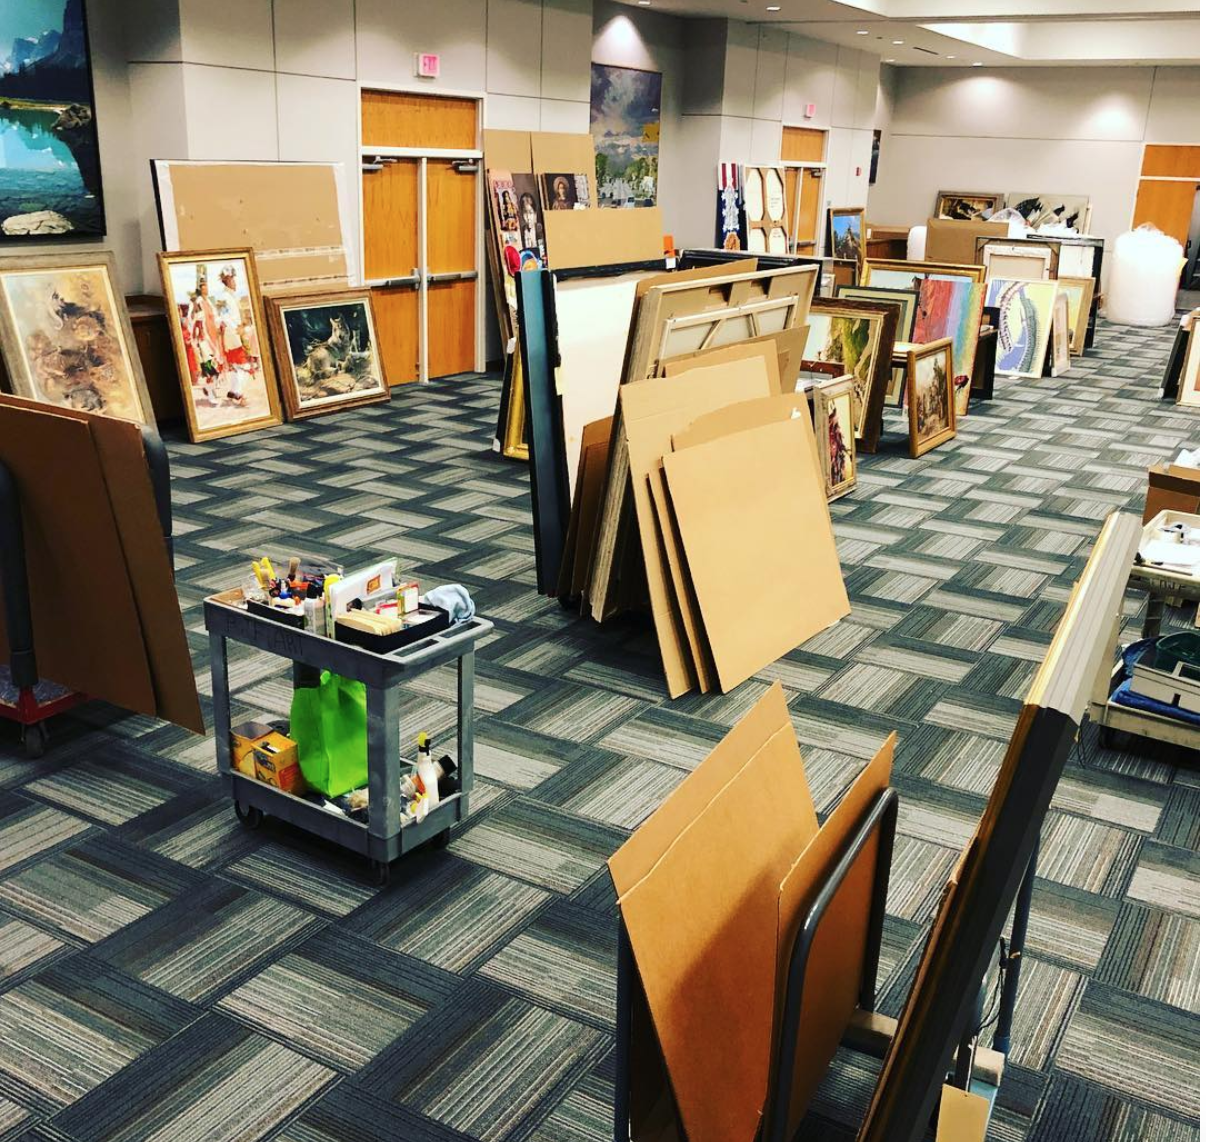 Art packing room for St. Cate Fine Arts, preparing works to travel to the soon-to-be-opened James Museum.